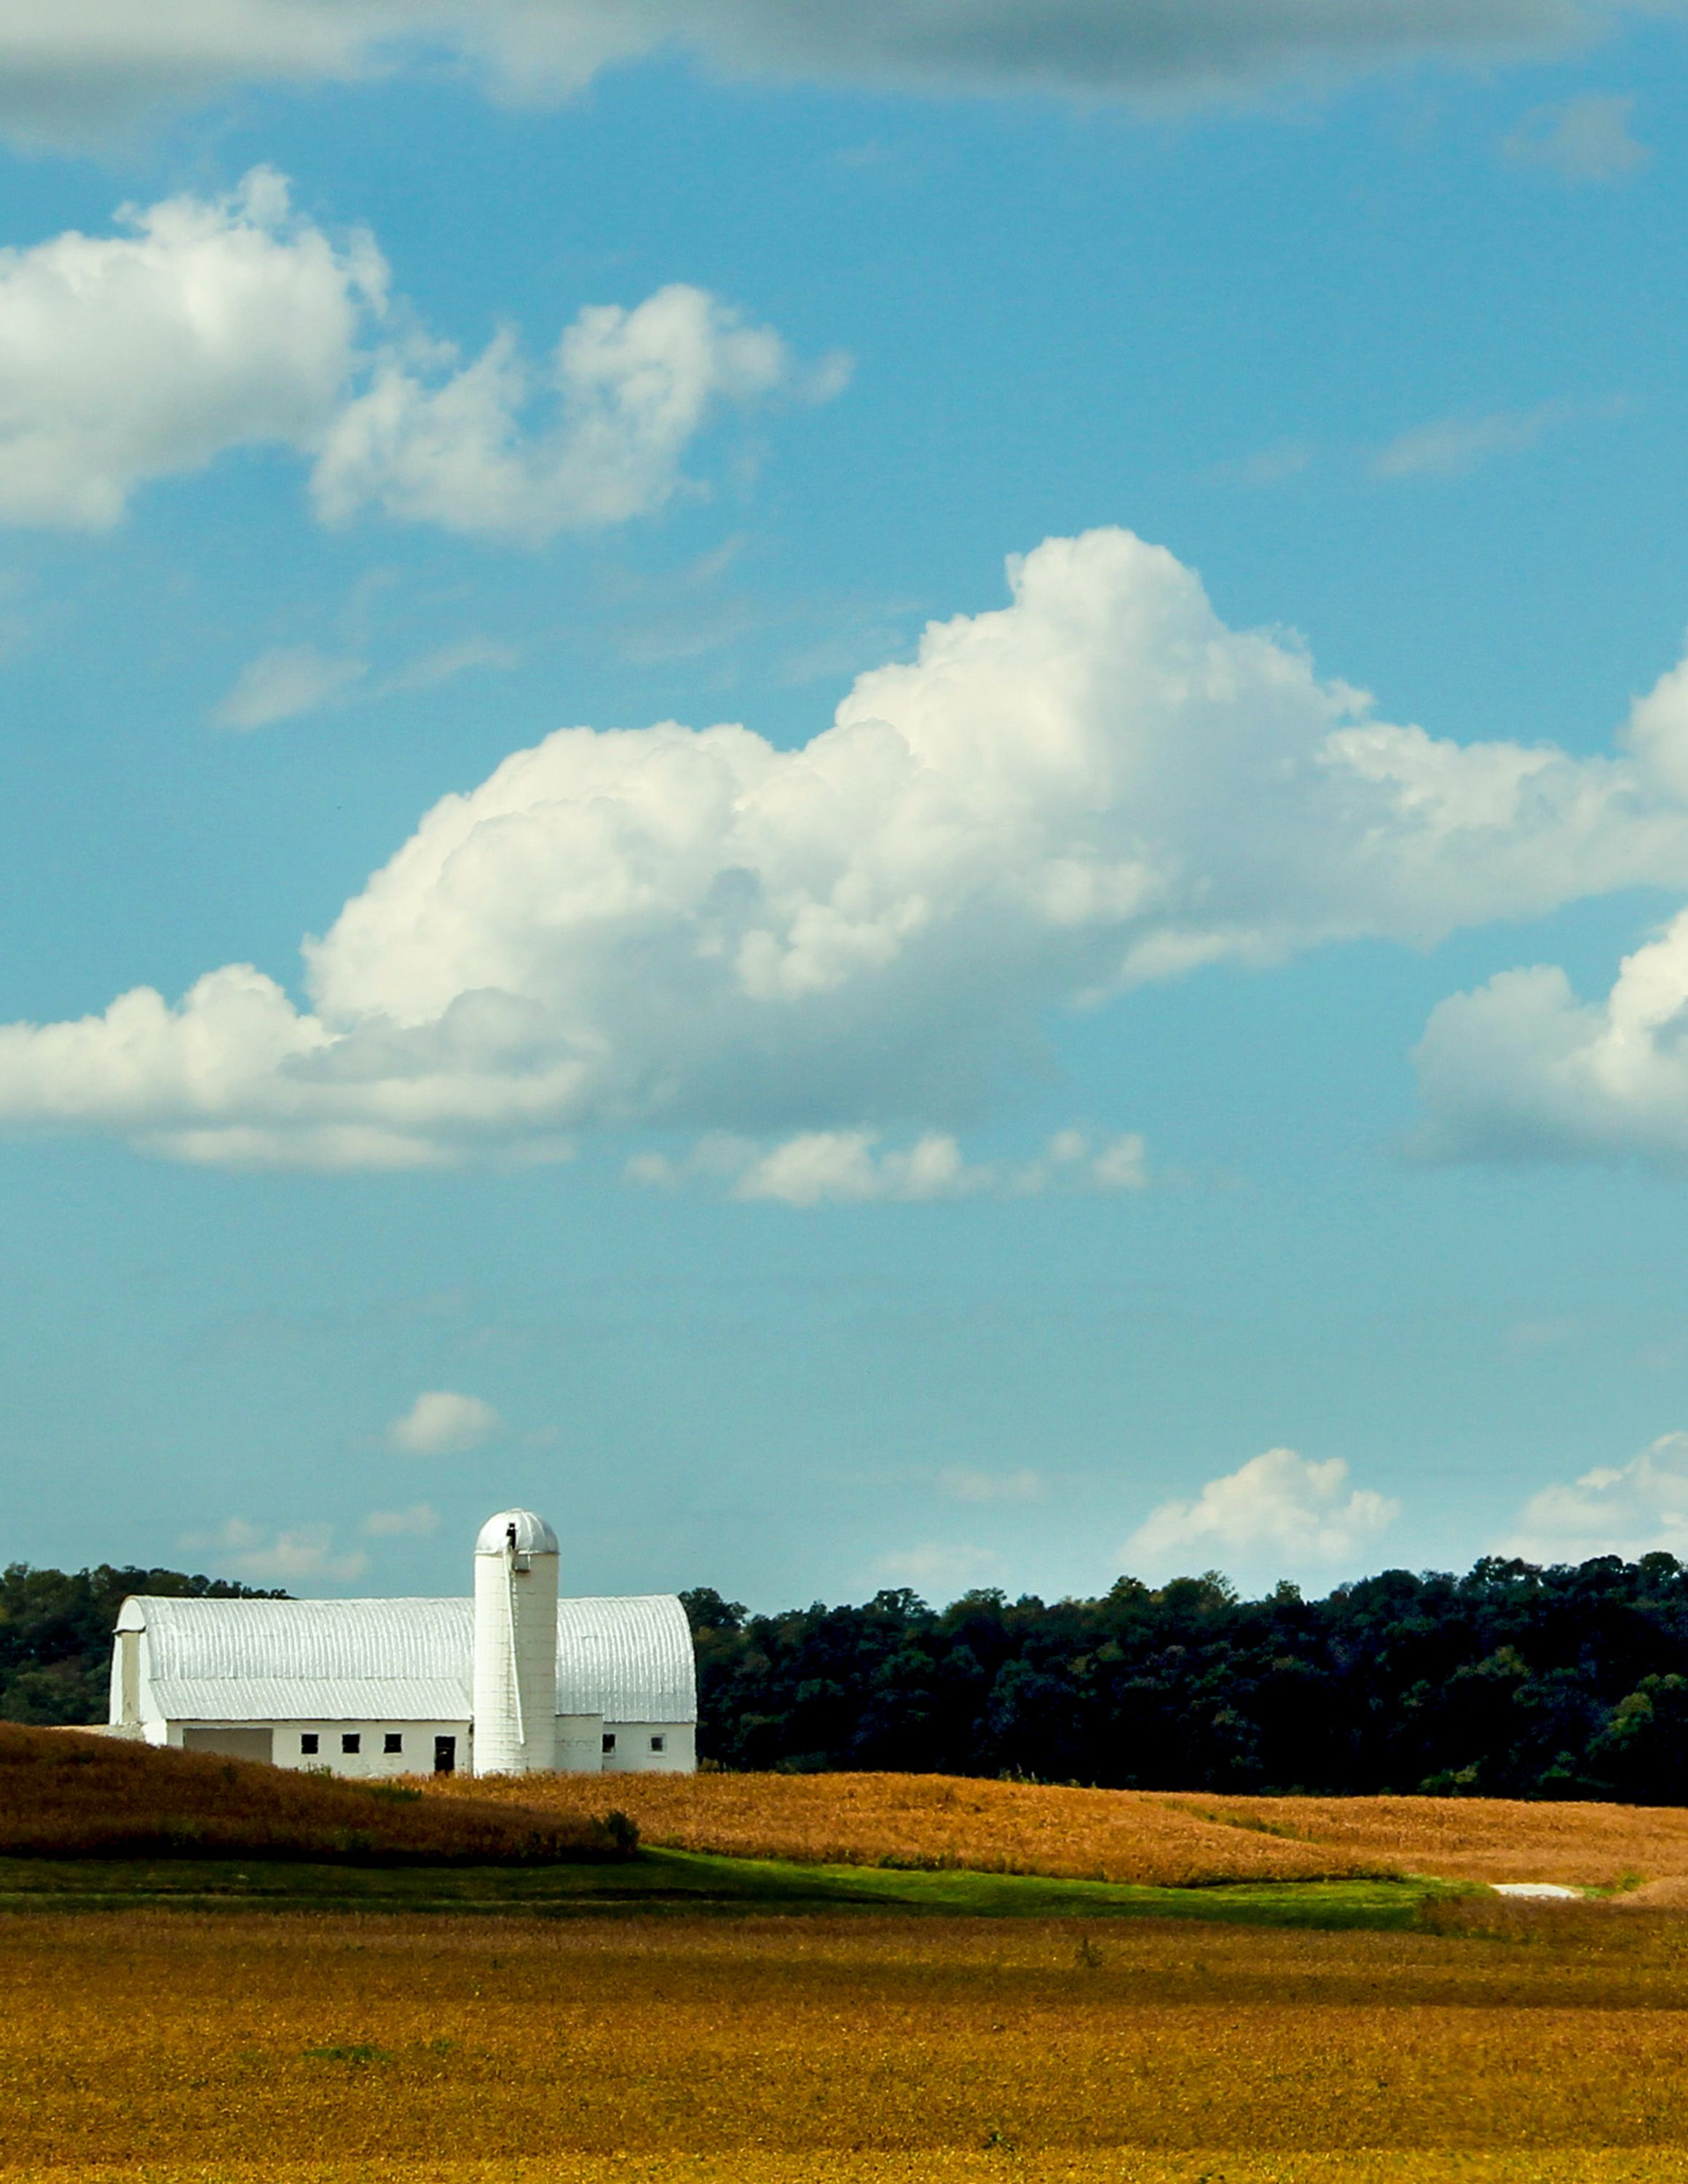 White barn and silo across a golden wheat field